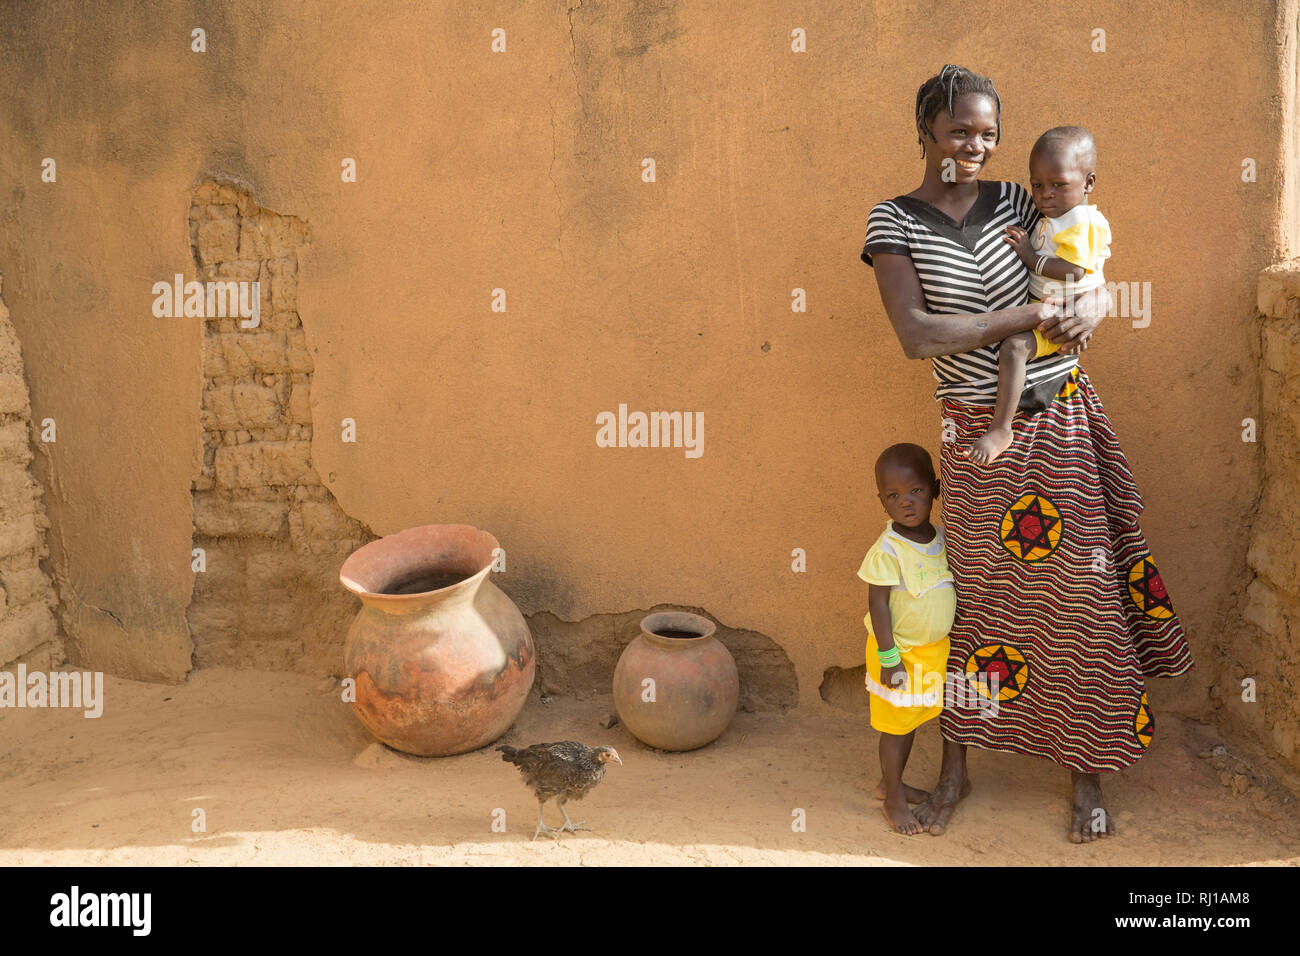 Samba village, Yako Province, Burkina Faso : Mamounata Kologo, 28, with her twins Abdmounourou  and Samiratou Zoundi, 20 month old. Stock Photo